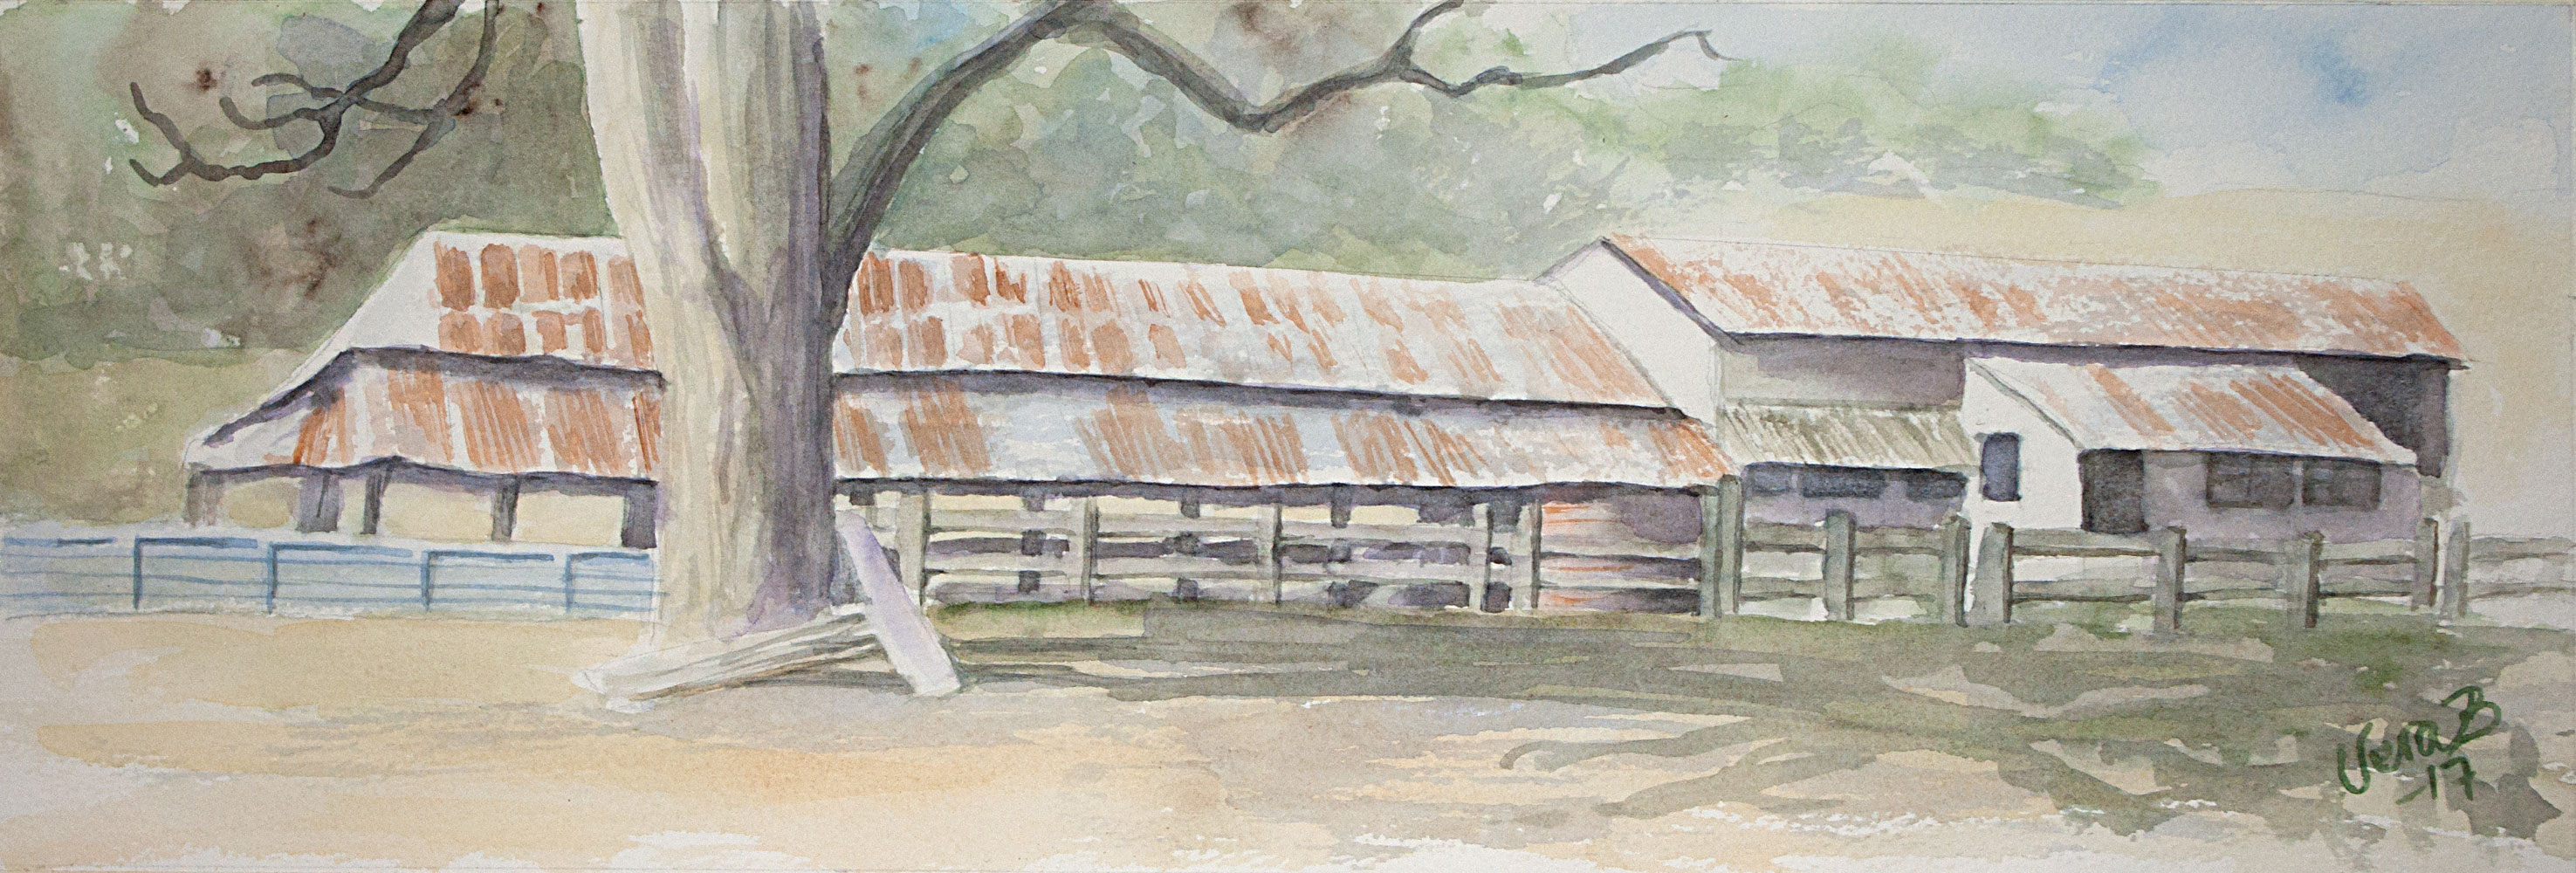 "Australian shearing shed. 16x50 cm (6,4x20"") on Arches rough 300gsm 2017. 135€"